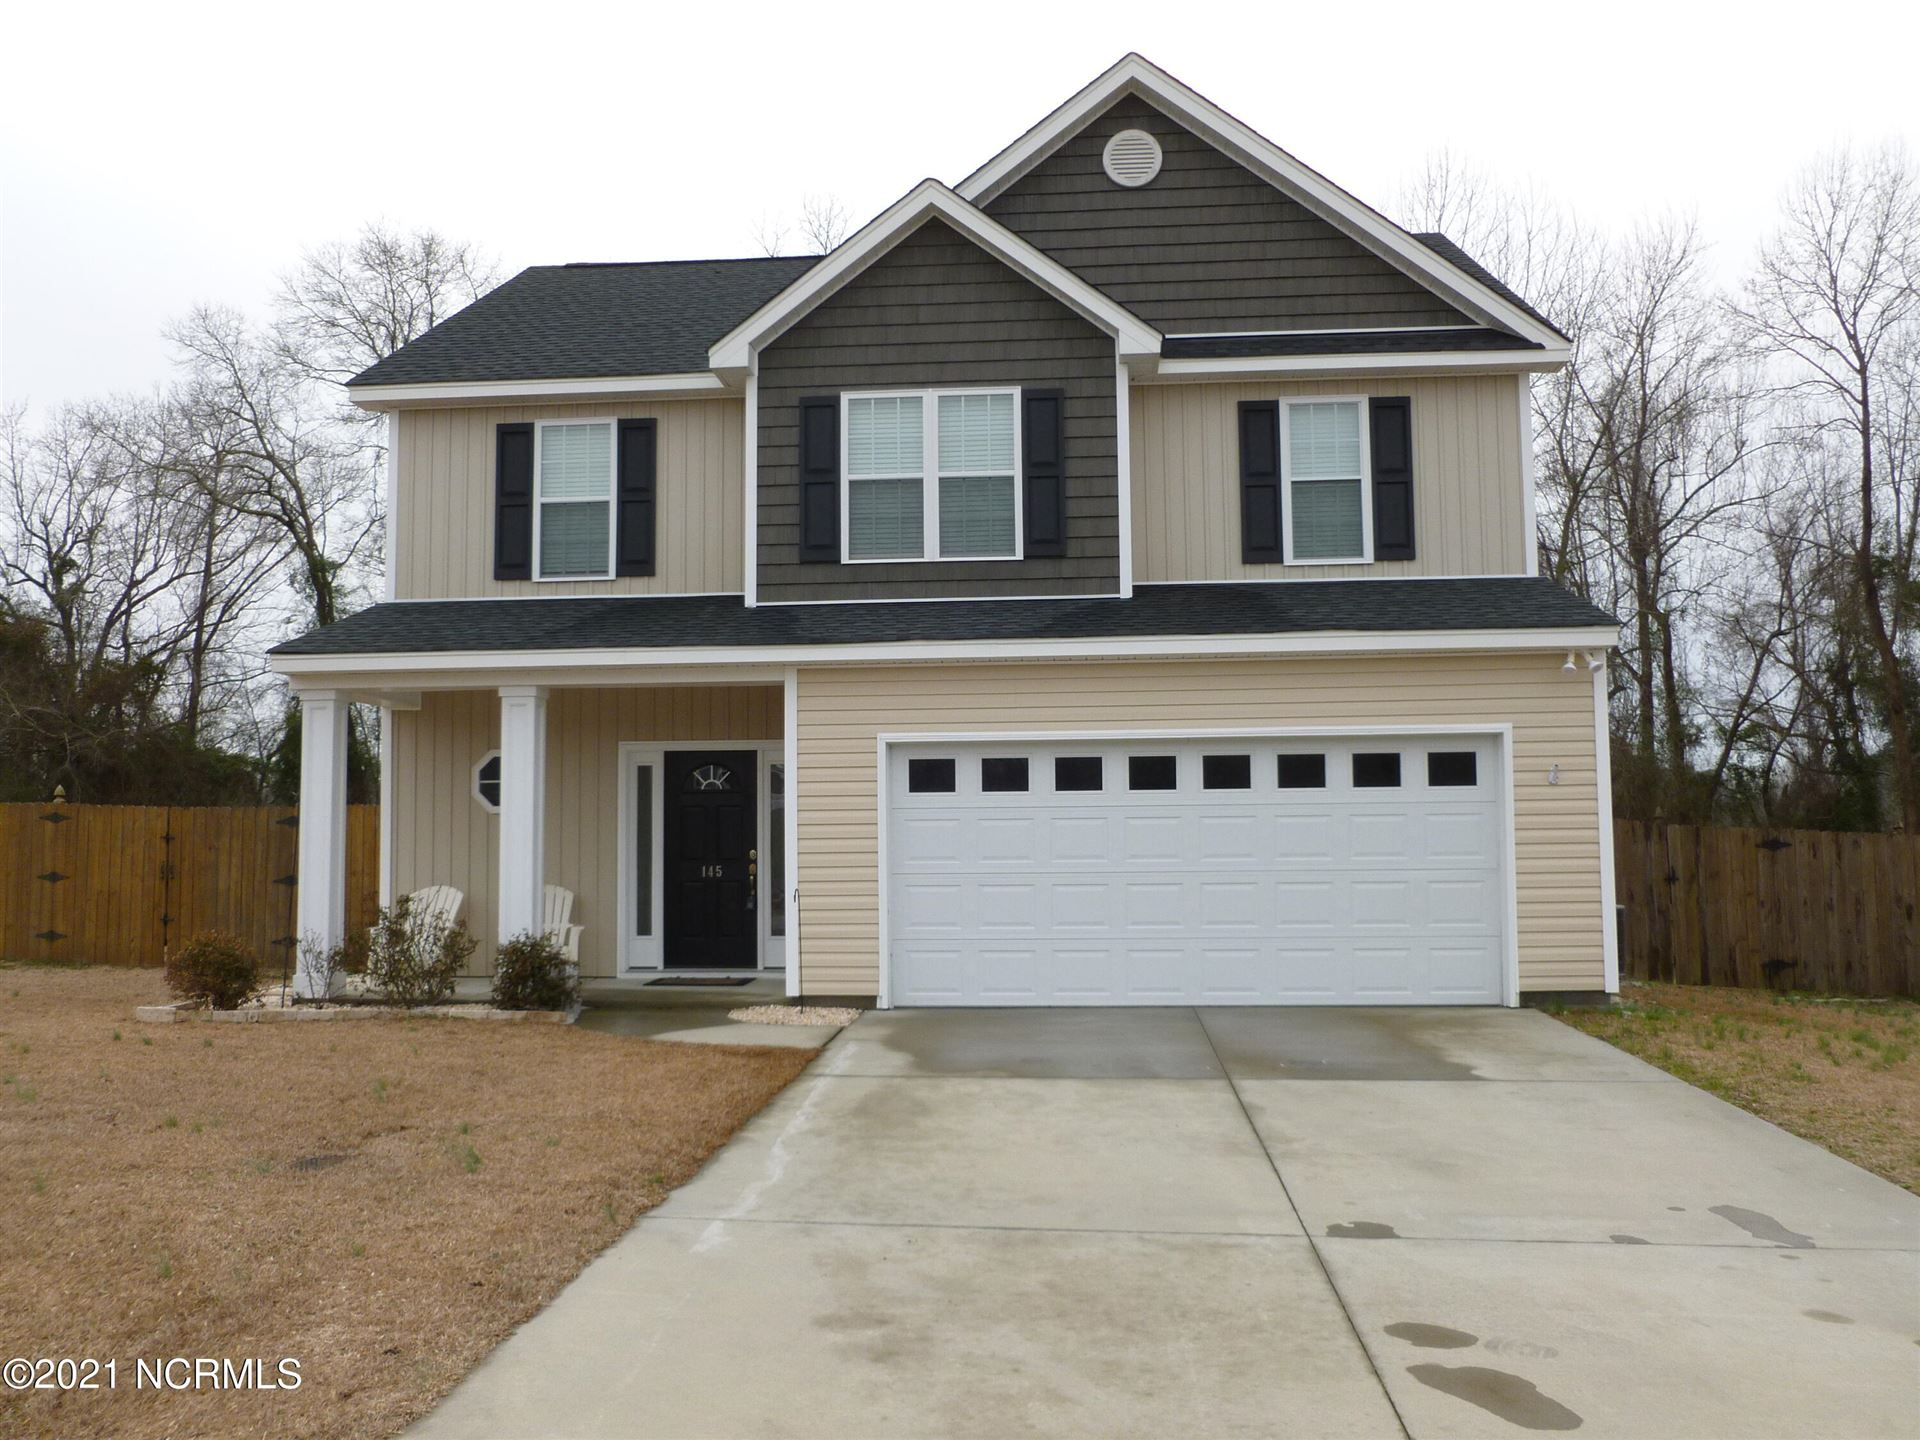 Photo of 145 Backfield Place, Jacksonville, NC 28540 (MLS # 100293011)